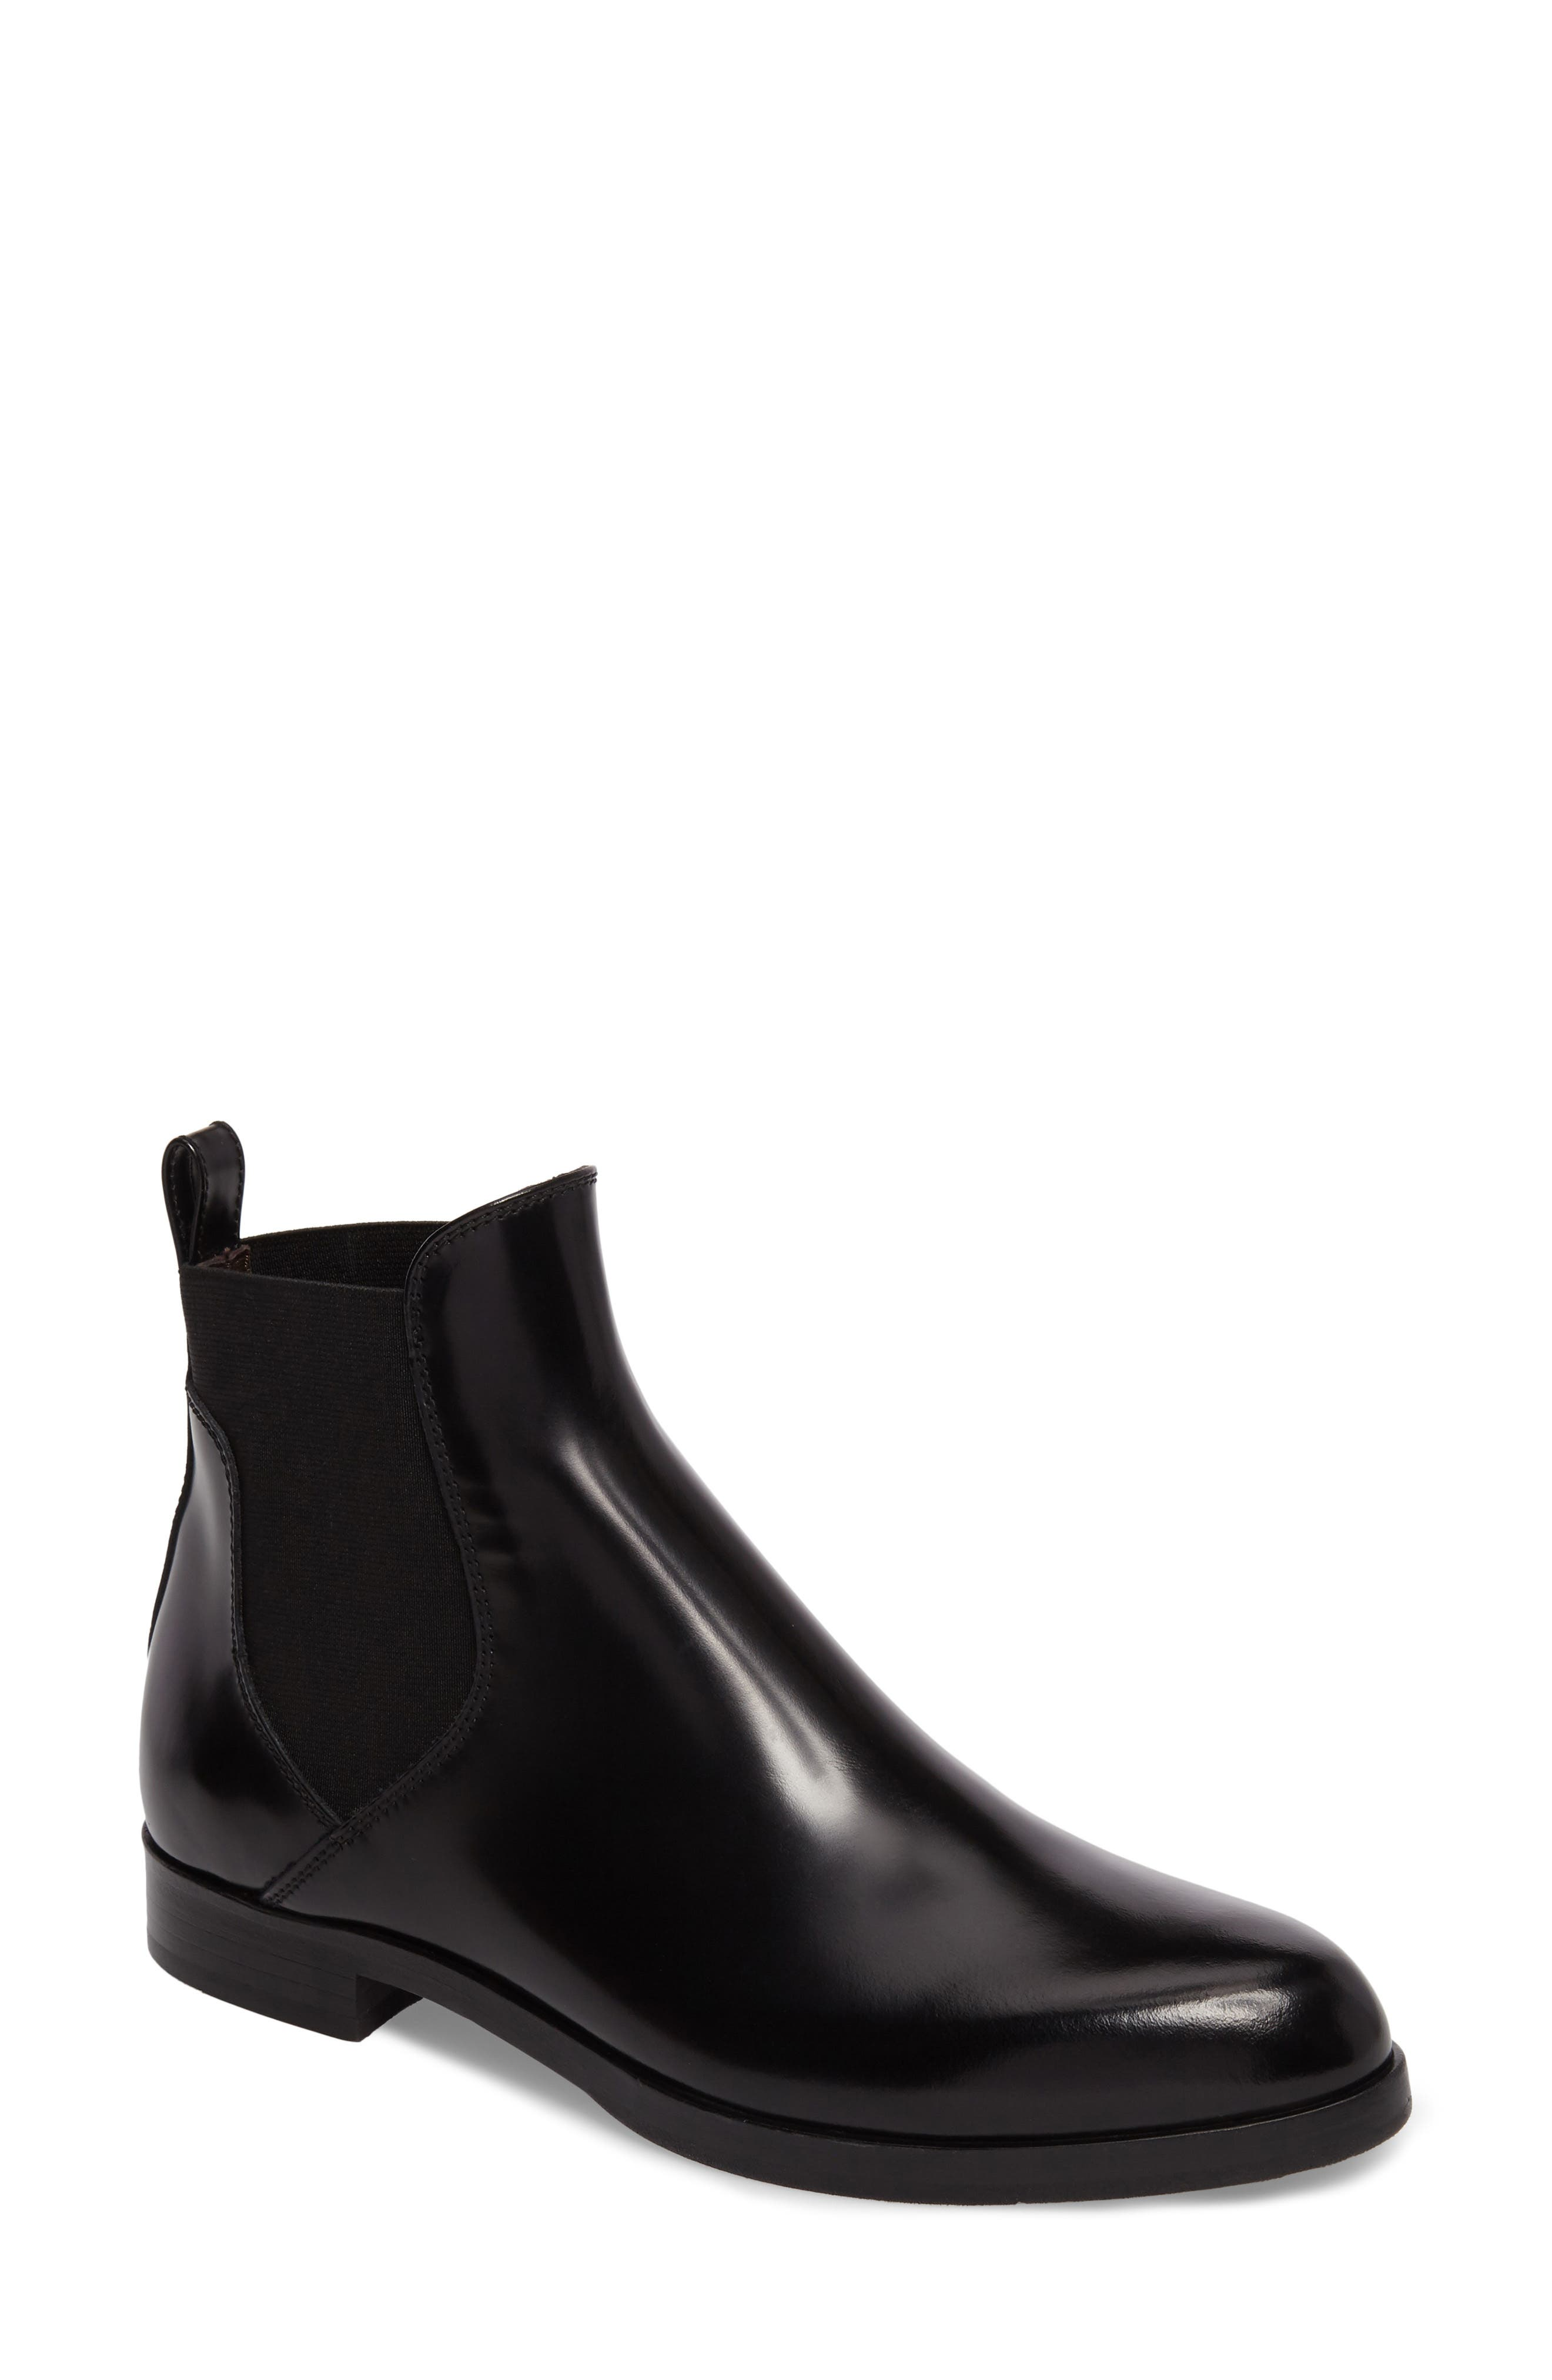 Gored Bootie,                         Main,                         color, Black Leather